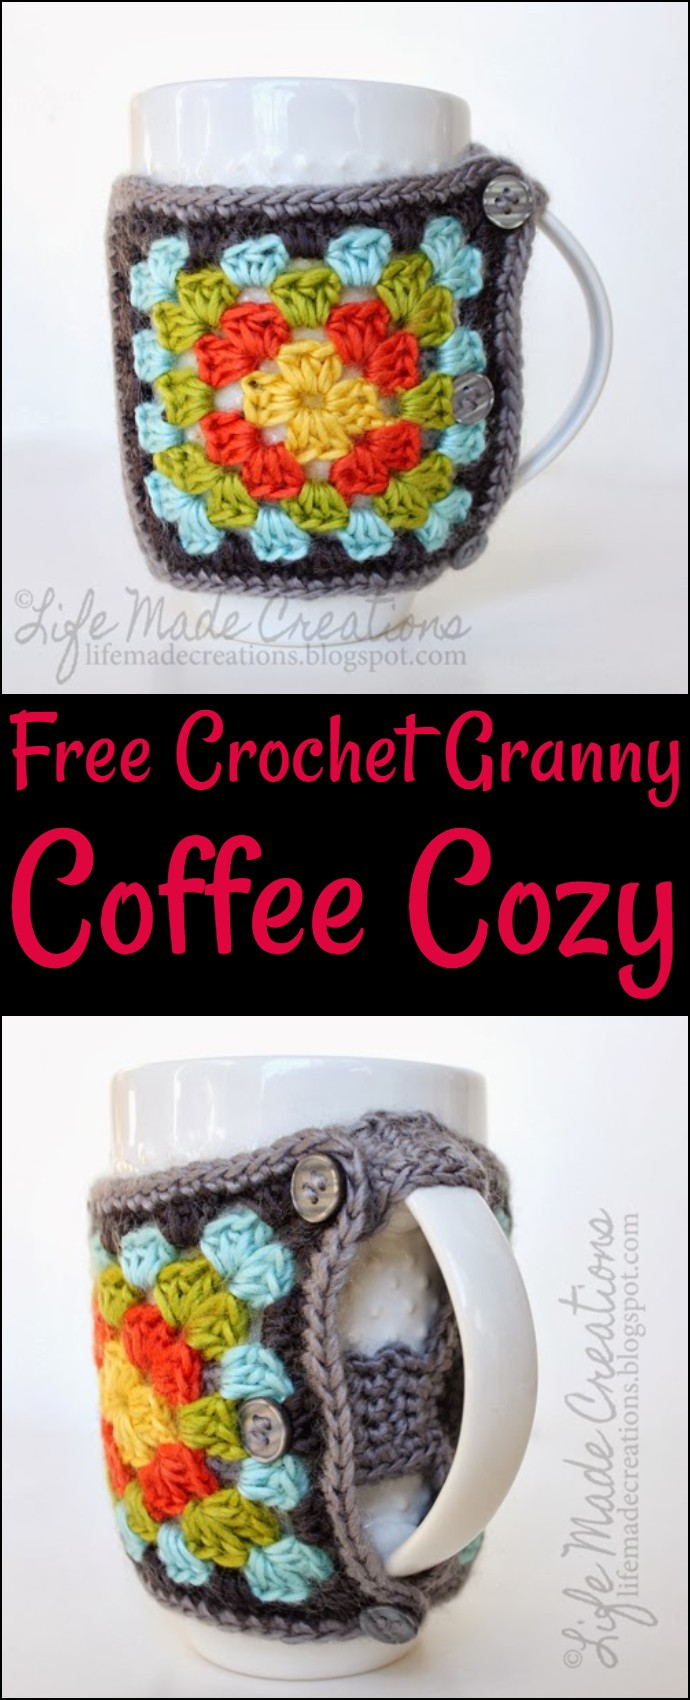 Free Crochet Granny Coffee Cozy